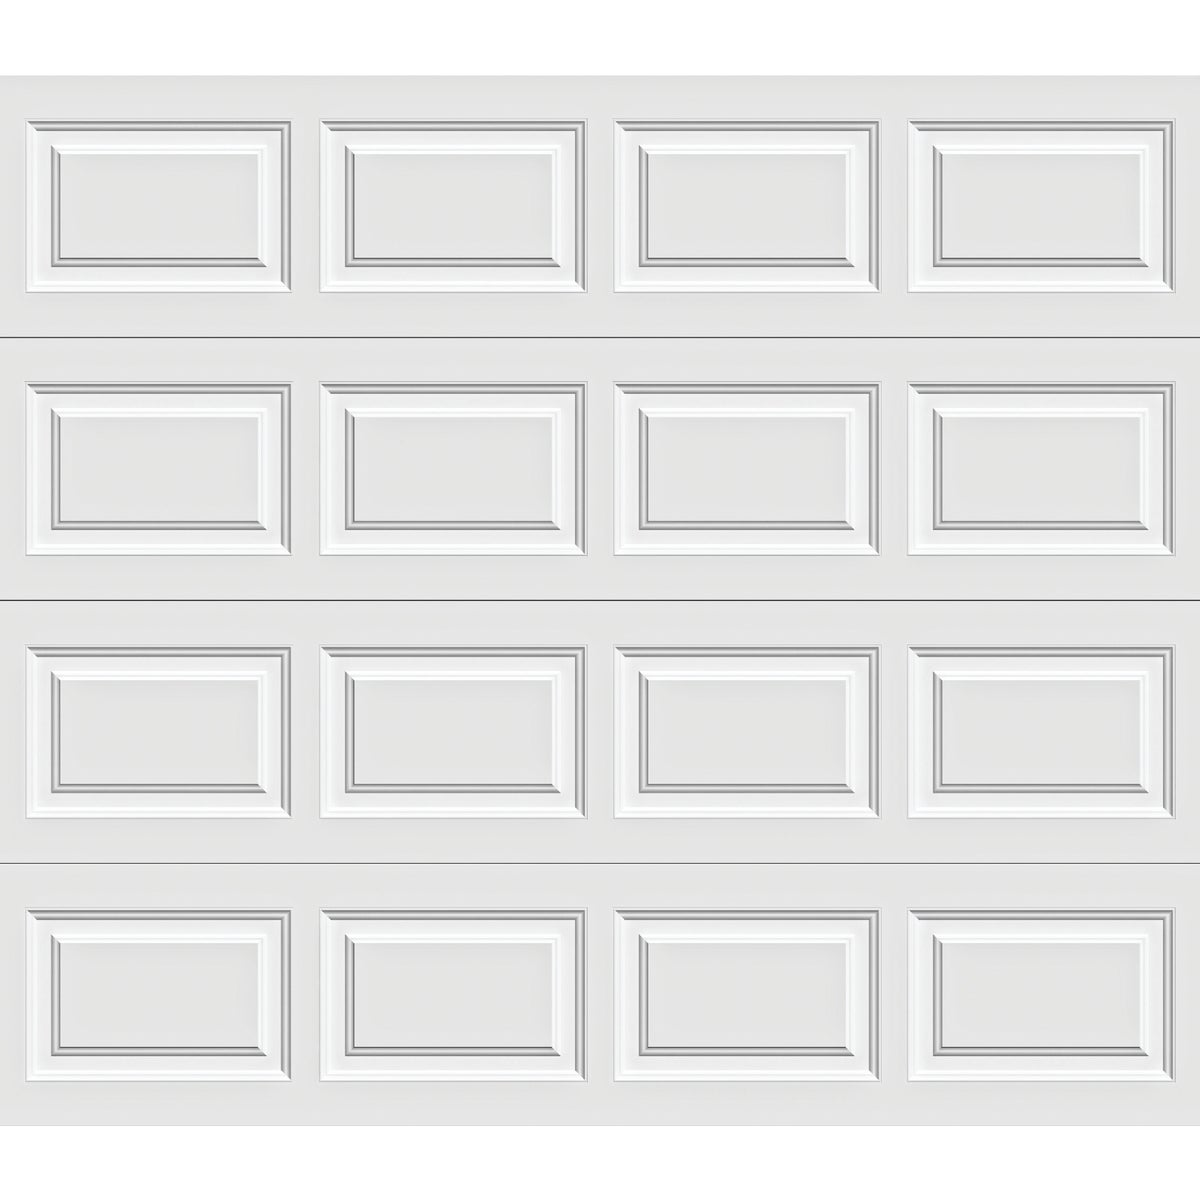 9X7 WHT STL GARAGE DOOR - A632071 6130 by Holmes Garage Doors